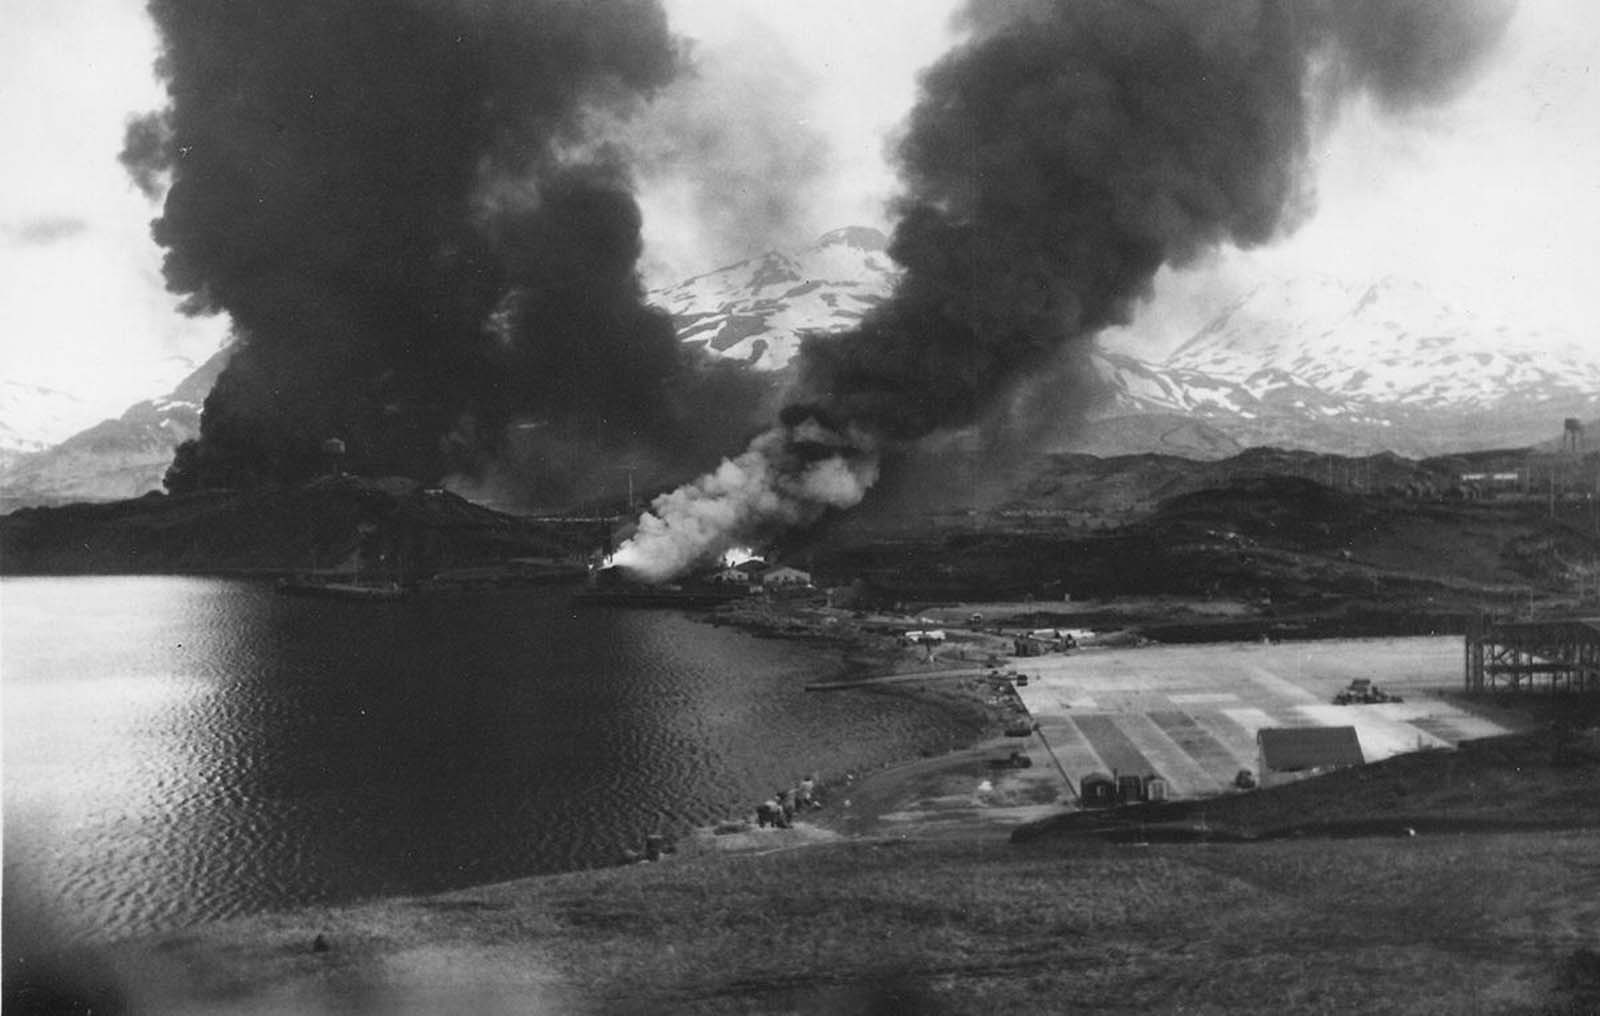 Oil tanks, the SS Northwestern, a beached transport ship, and warehouses on fire after Japanese air raids in Dutch Harbor, Alaska, on June 4, 1942.